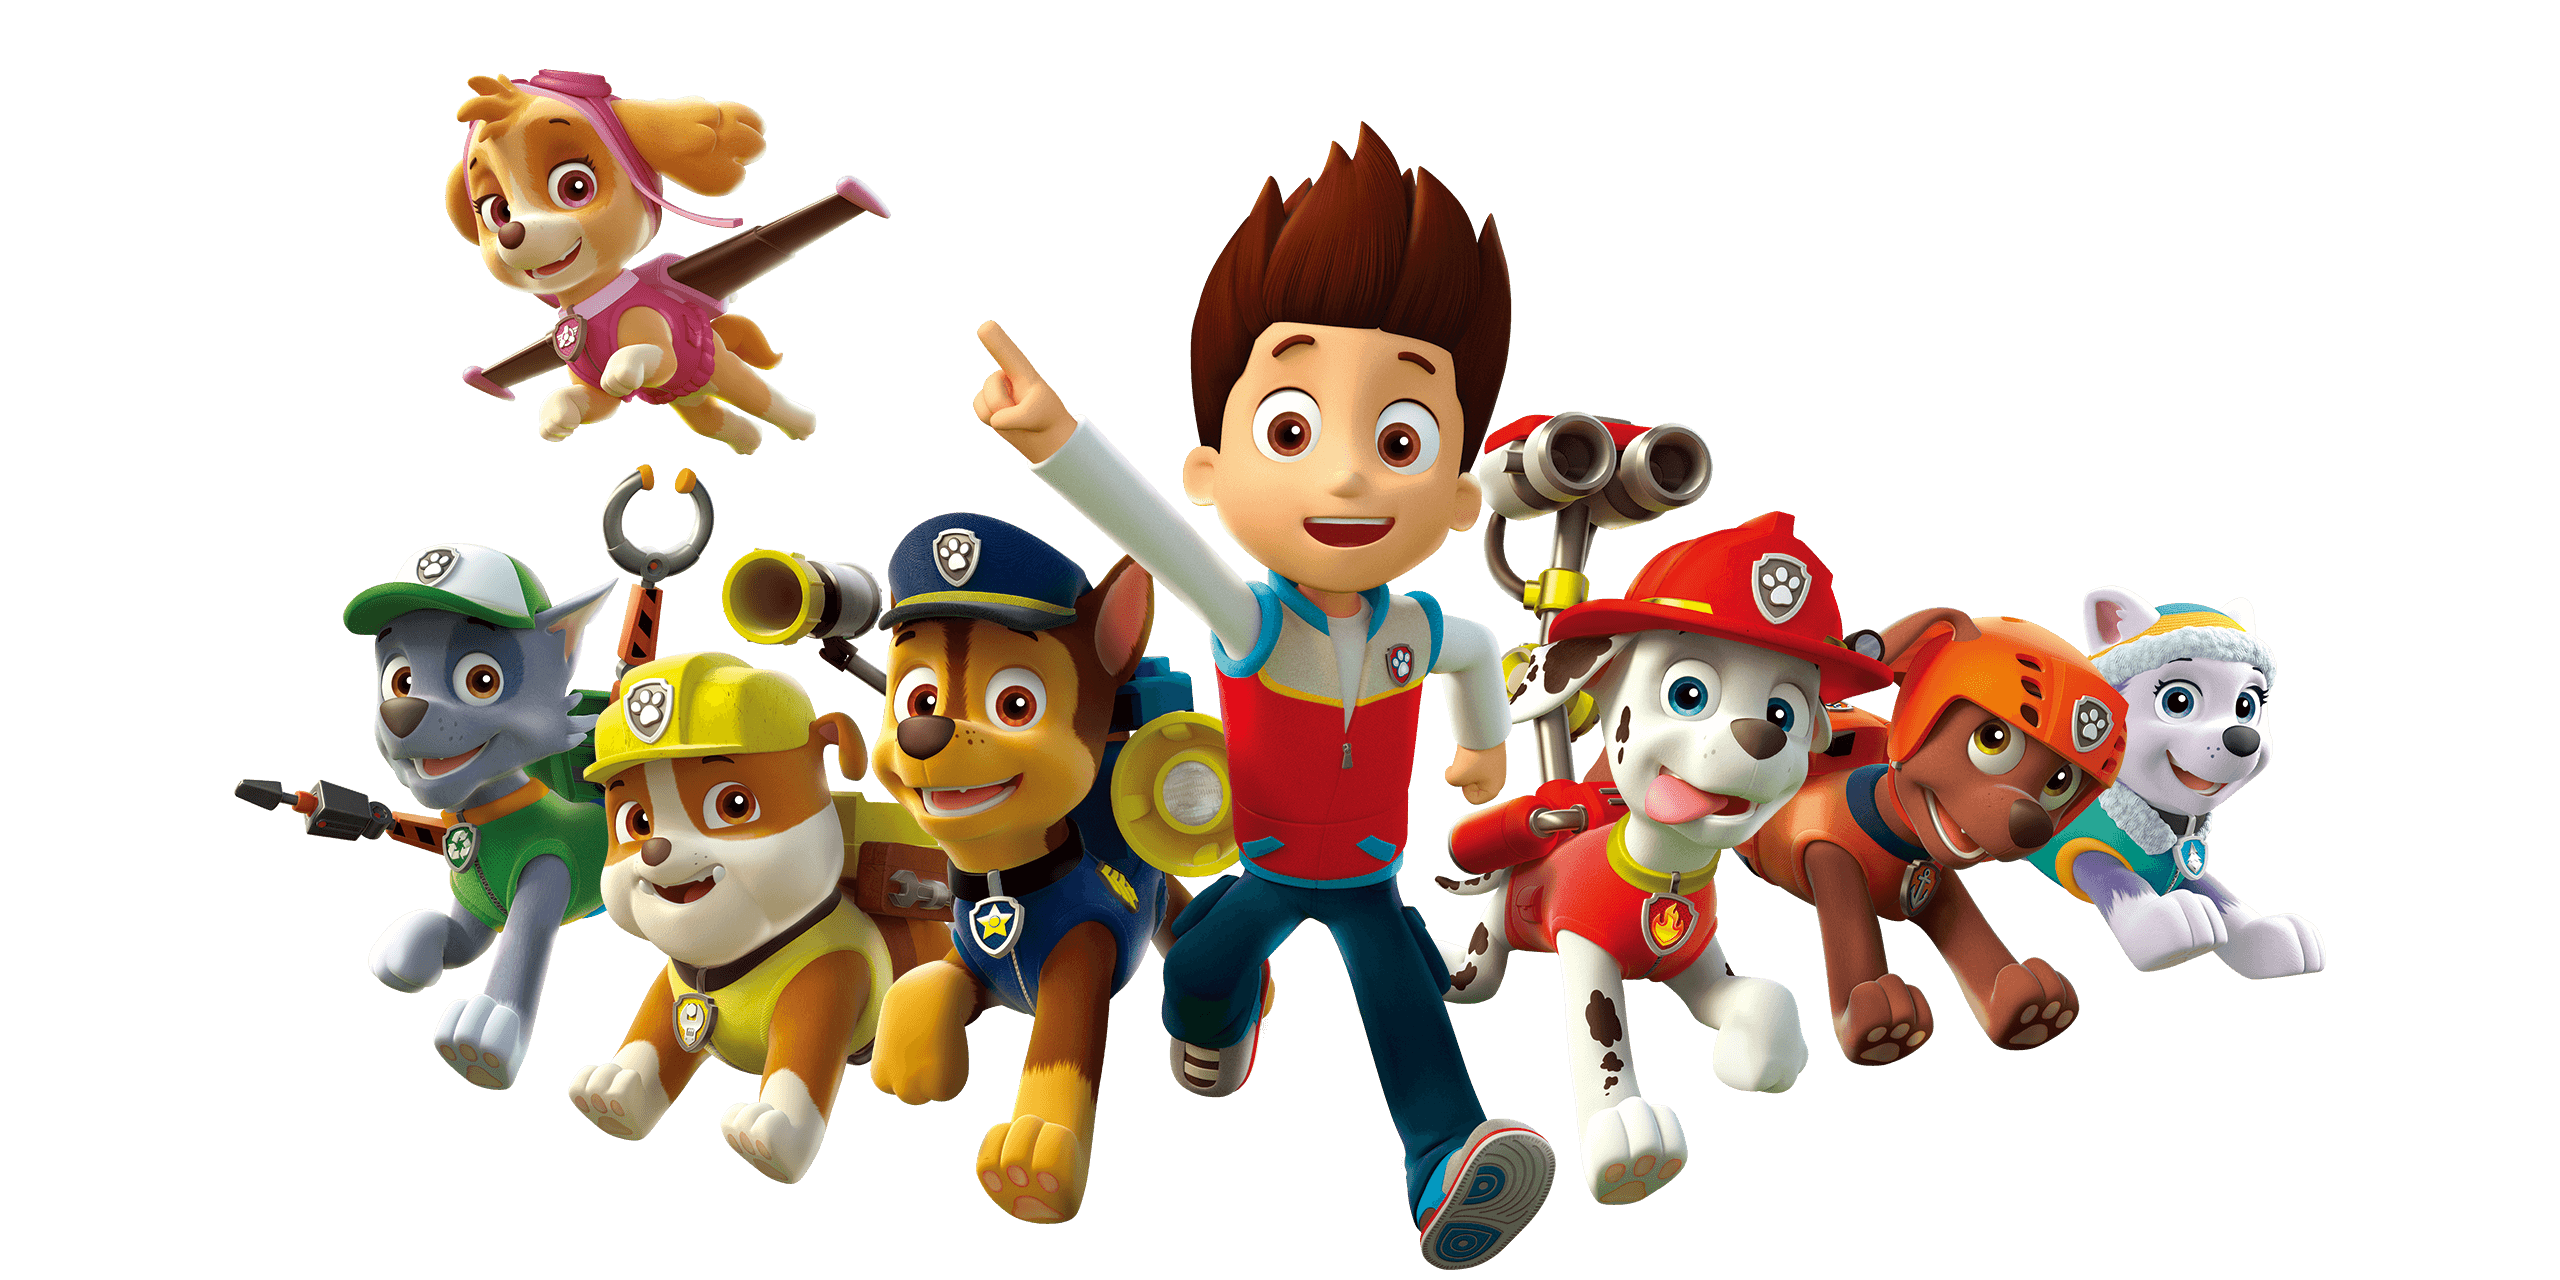 PAW Patrol home characters